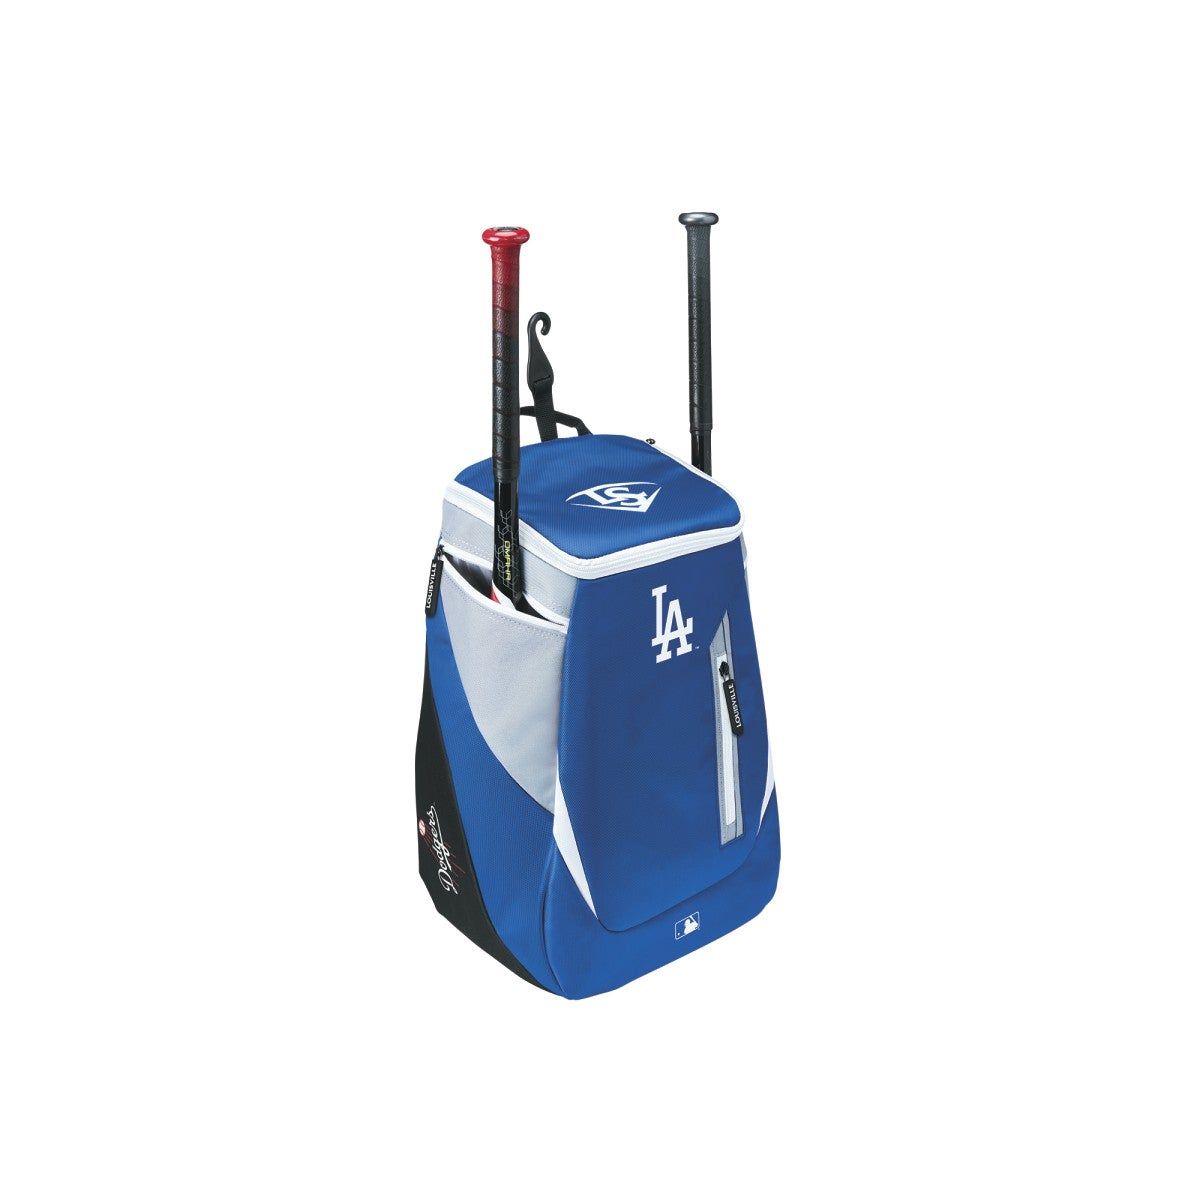 Genuine MLB Bag - Los Angeles Dodgers